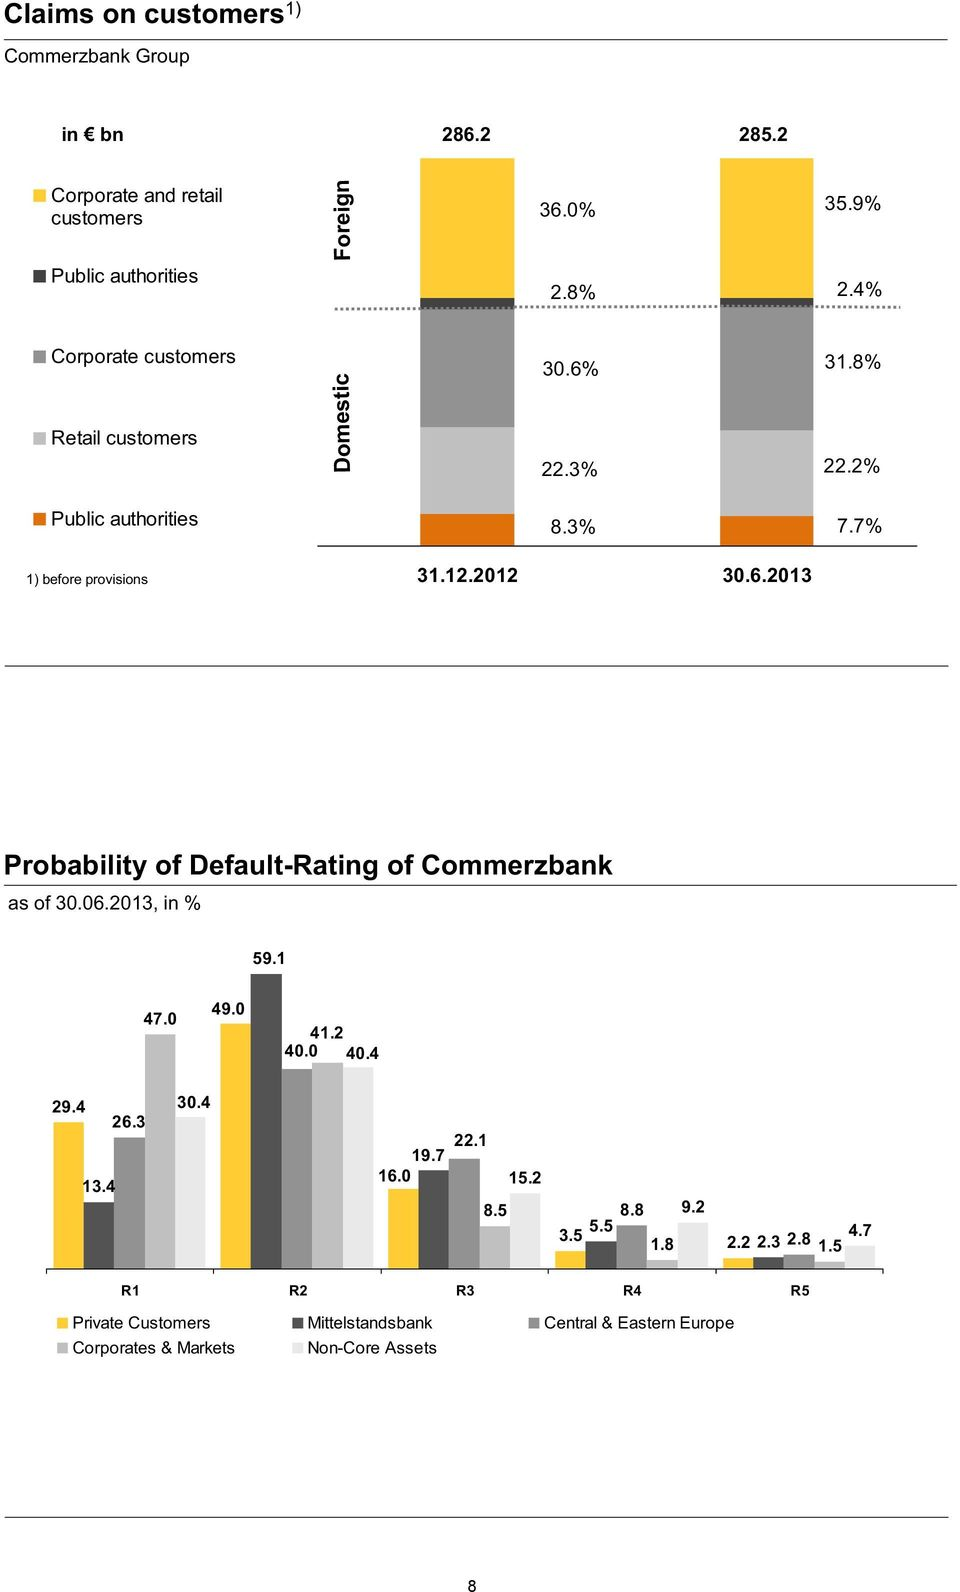 7% Probability of Default-Rating of Commerzbank as of 30.06.2013, in % 59.1 47.0 49.0 41.2 40.0 40.4 29.4 13.4 26.3 30.4 19.7 16.0 22.1 8.5 15.